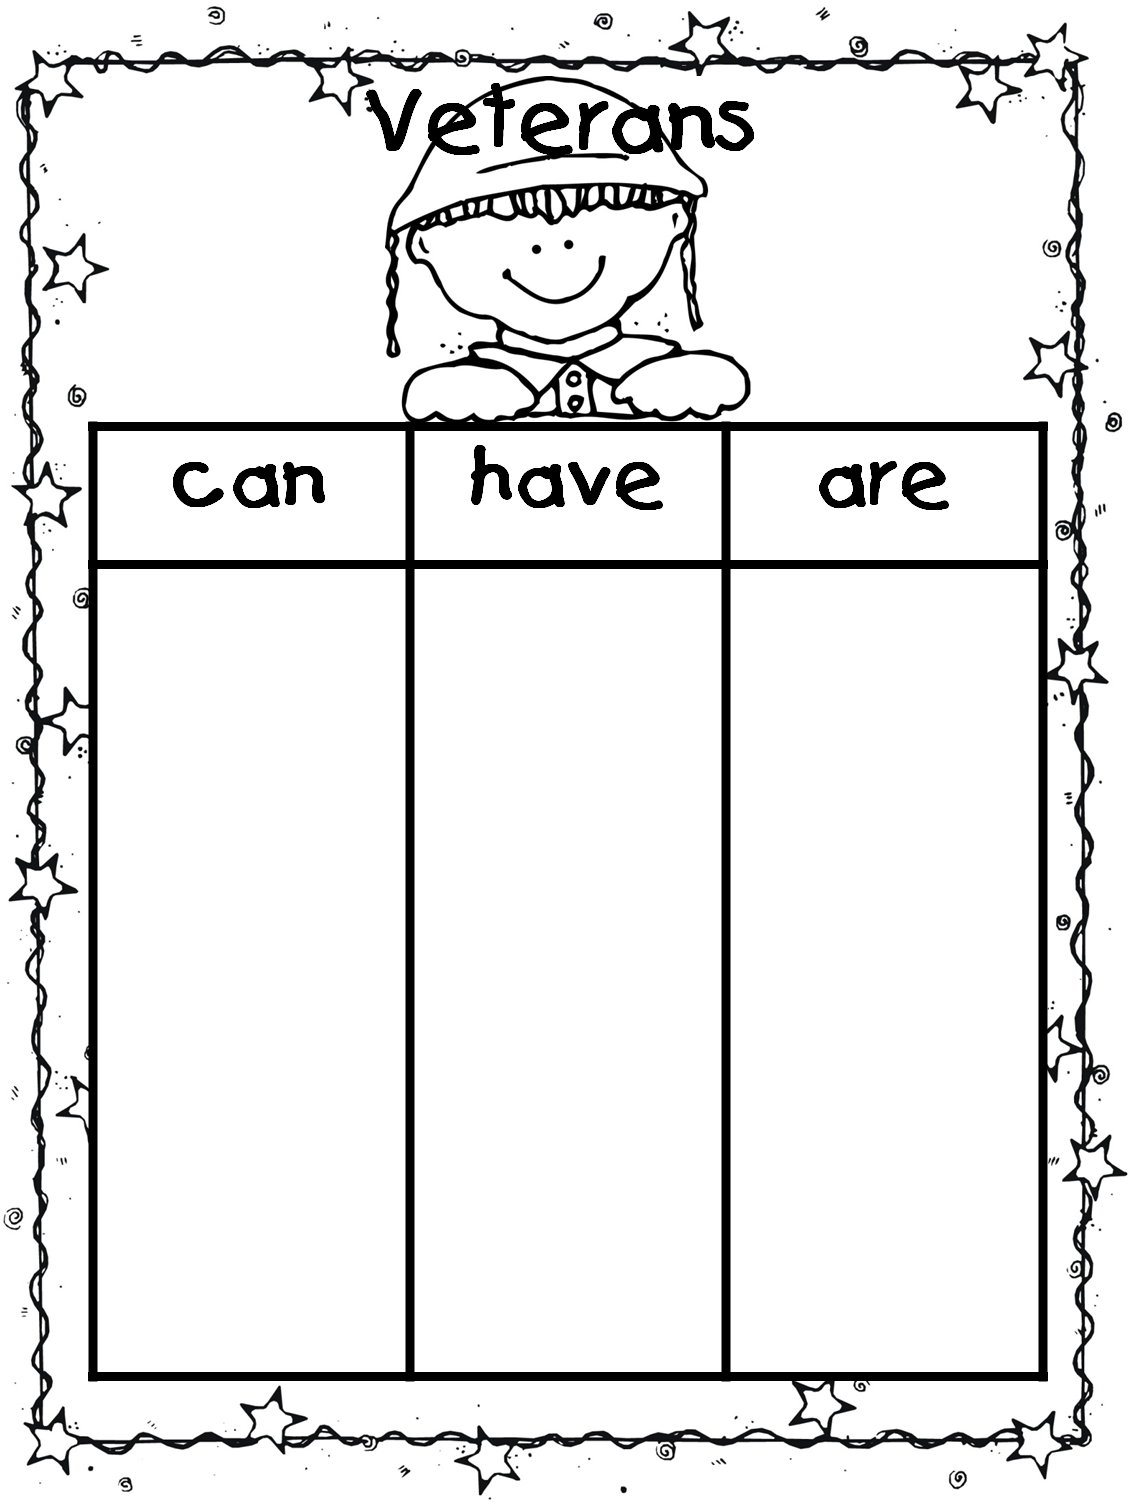 Workbooks inflectional endings first grade worksheets : Veterans Day Unit- Thank You Veterans! | First Grade Wow | Bloglovin'